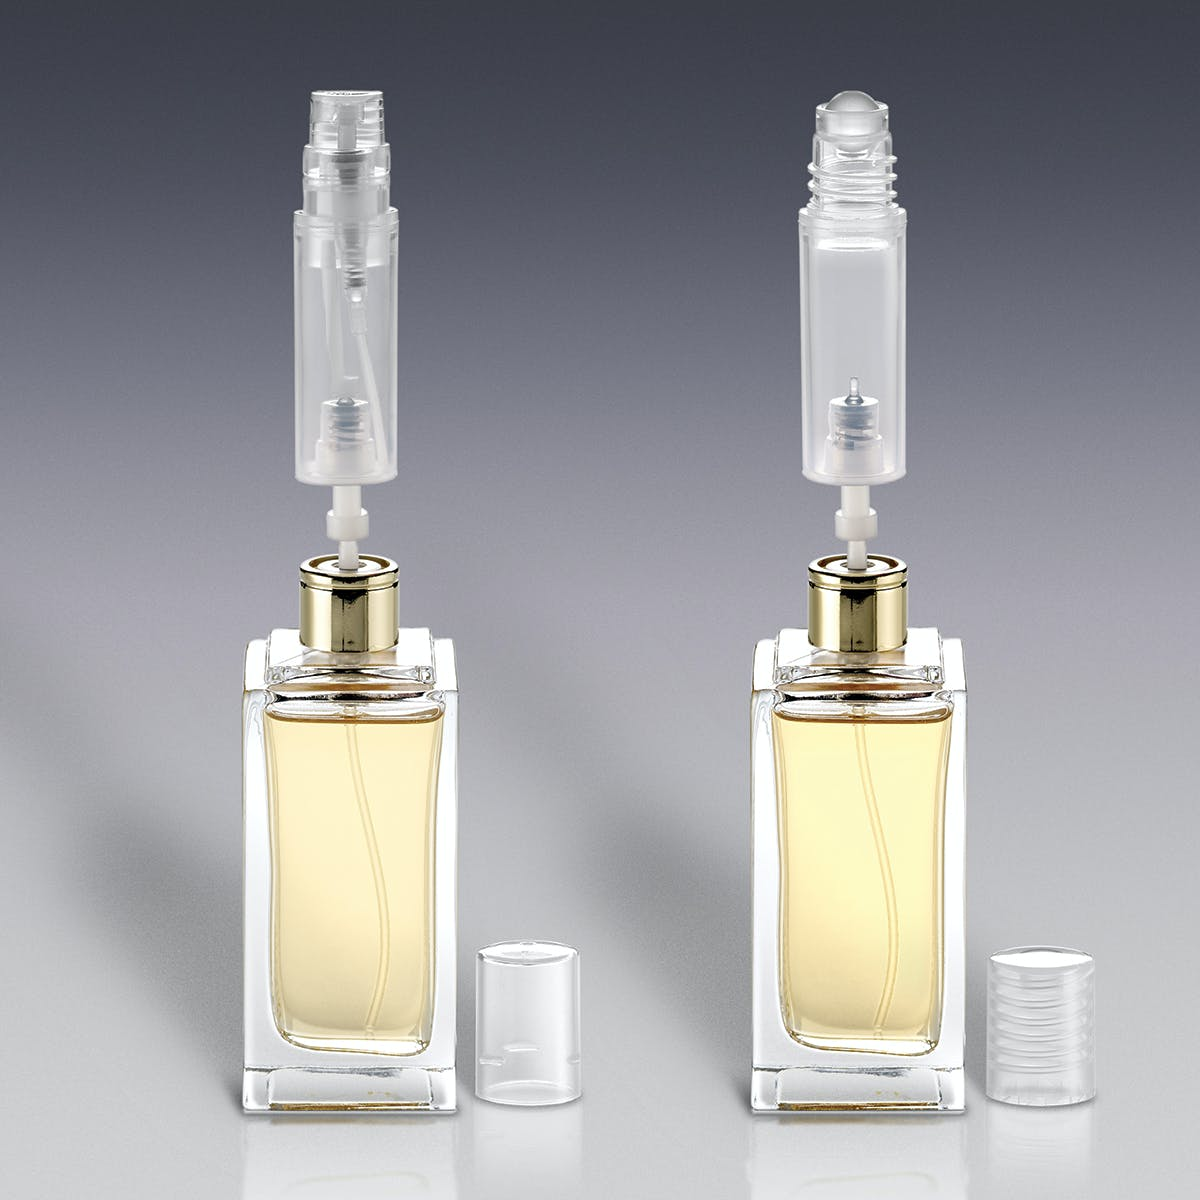 Refillable Fragrance Bottles Cosmetics bottle sold by Qosmedix